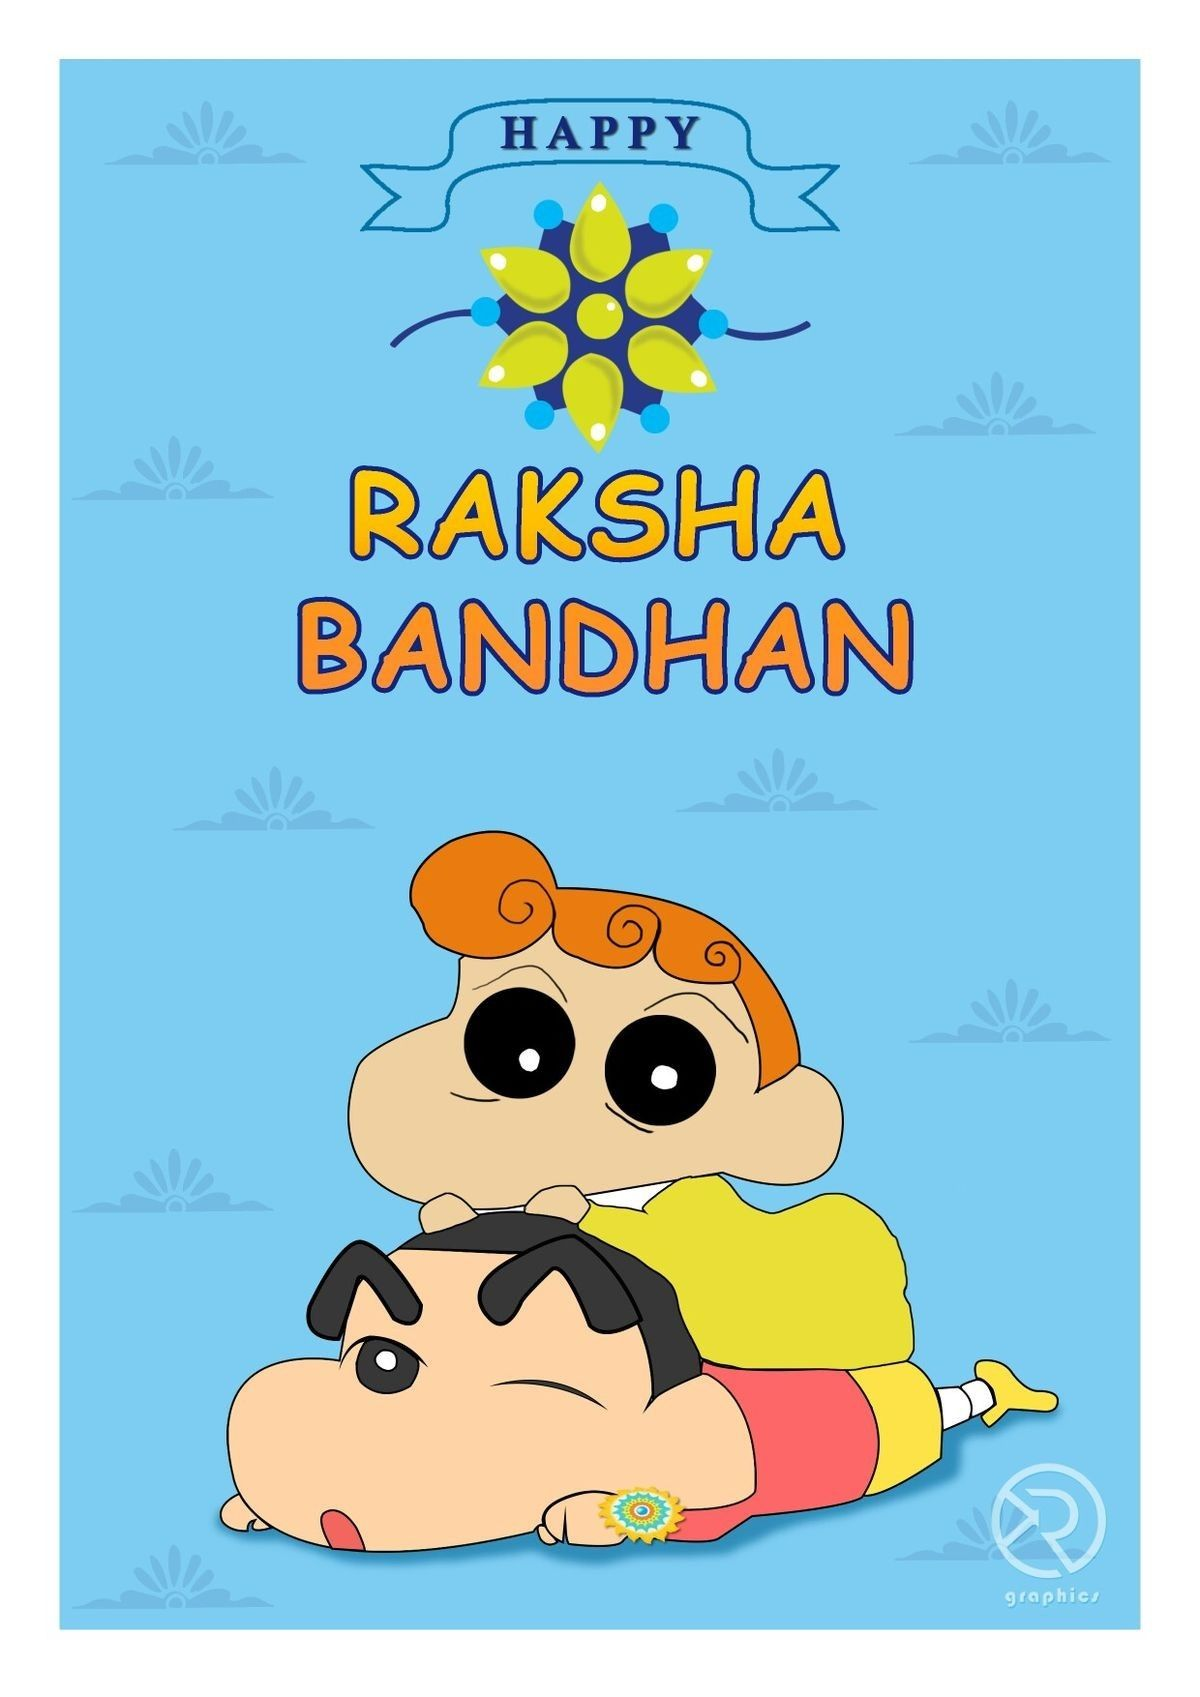 Pin By Sara Priyadarshini On Funny Jokes In 2020 Happy Rakhi Images Happy Rakshabandhan Happy Rakhi